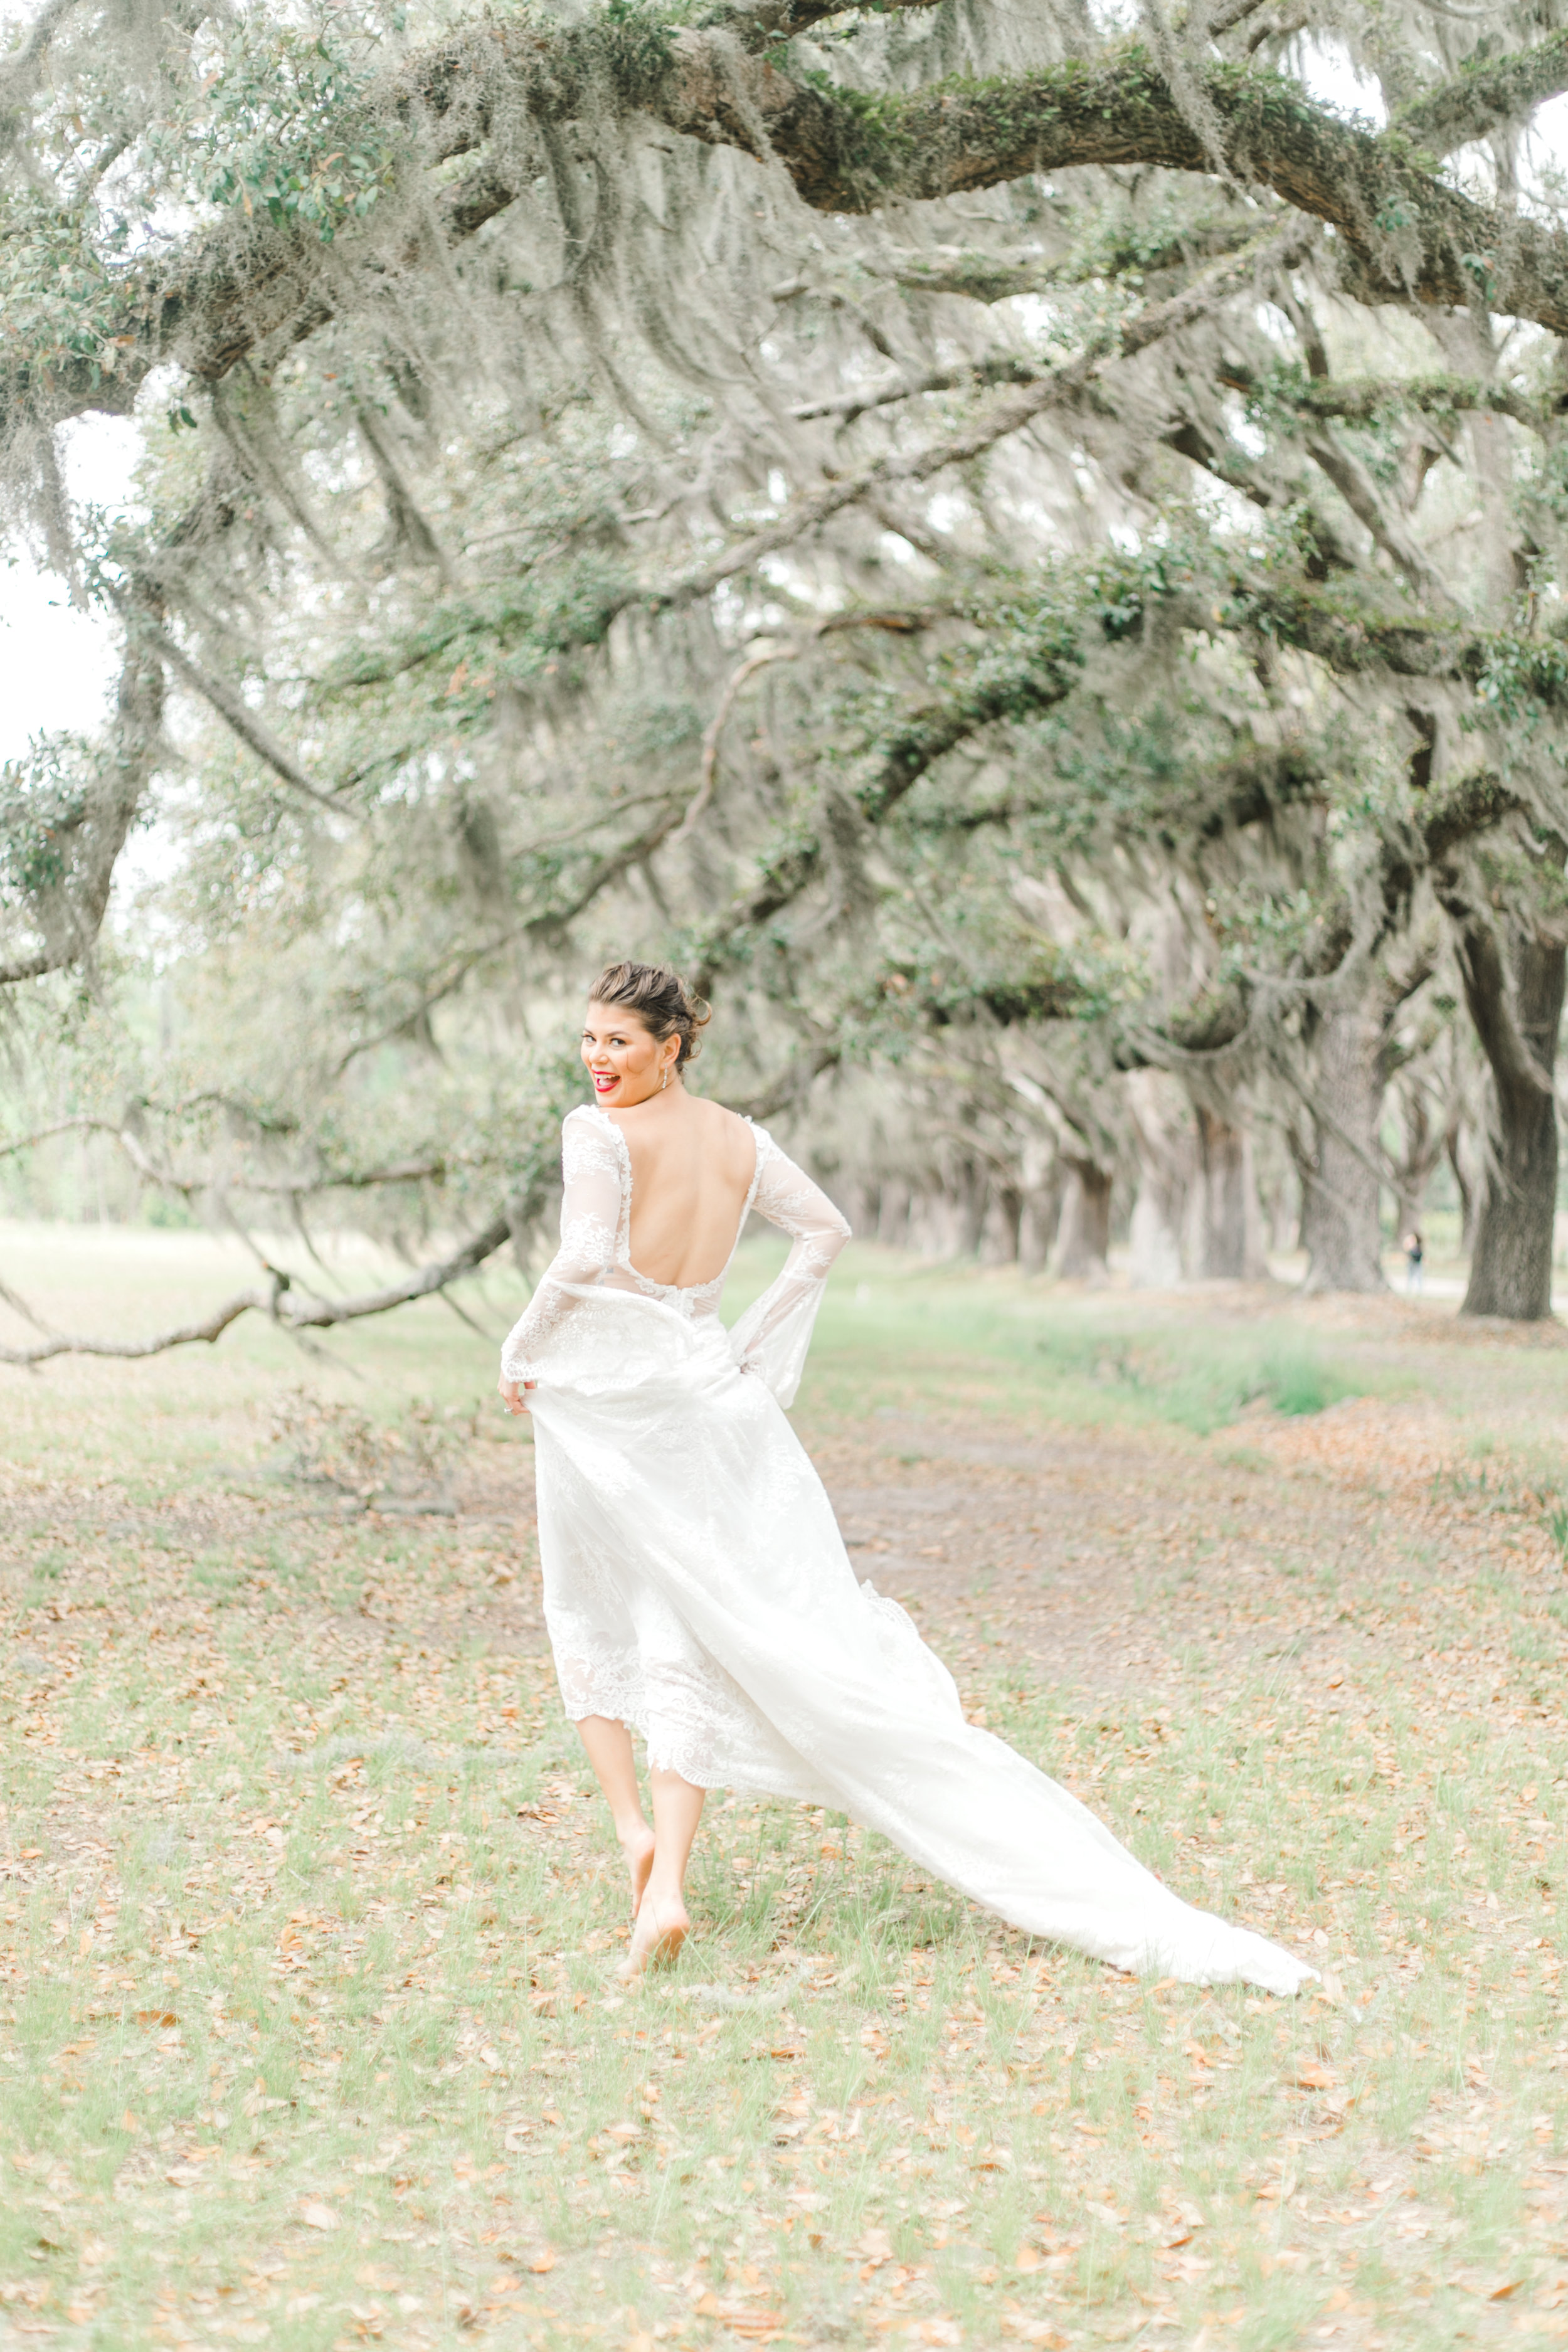 wormsloe-wedding-inspiration-lamour-by-calla-blanche-amber-wedding-dress-ivory-and-beau-savannah-wedding-dresses-long-sleeve-wedding-dress-wormsloe-elopementSelyciayangphotograpy-70.jpg